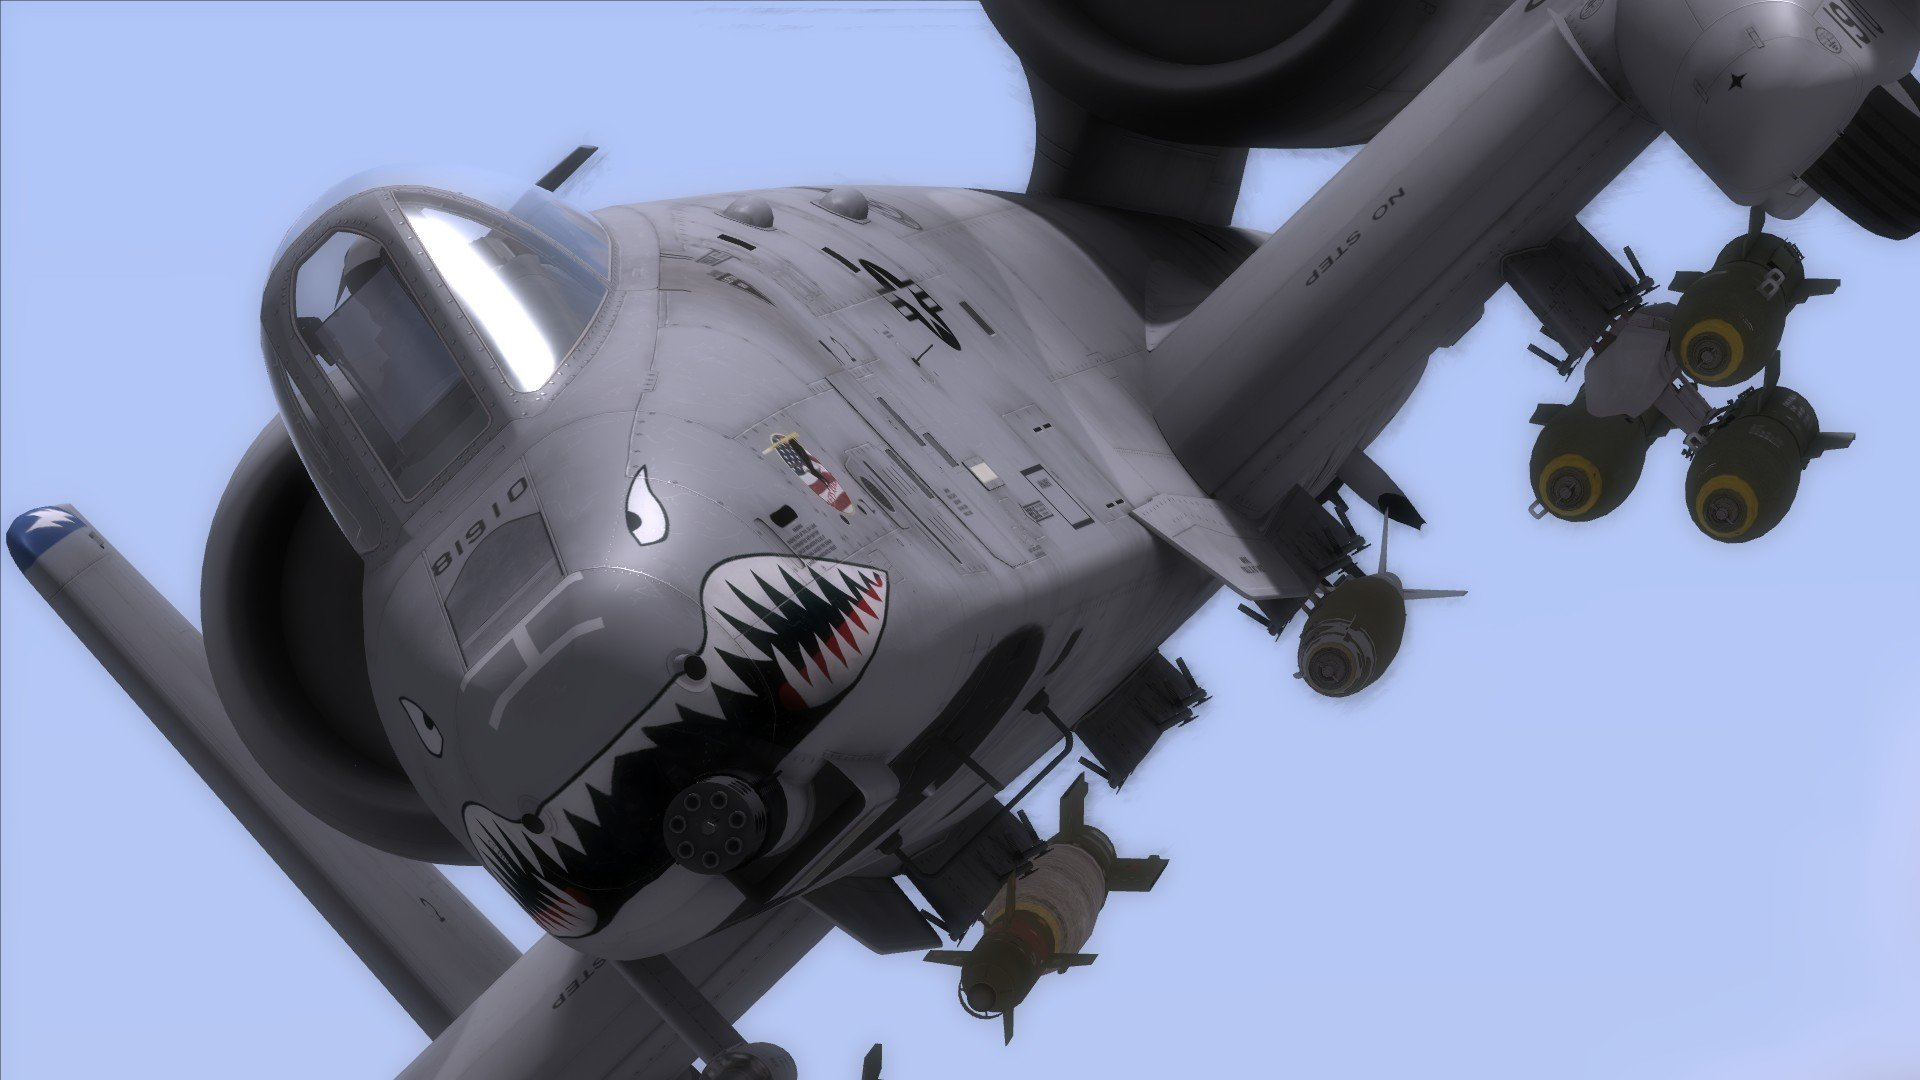 10 bomber jet fighter bomb military airplane plane thunderbolt warthog 1920x1080